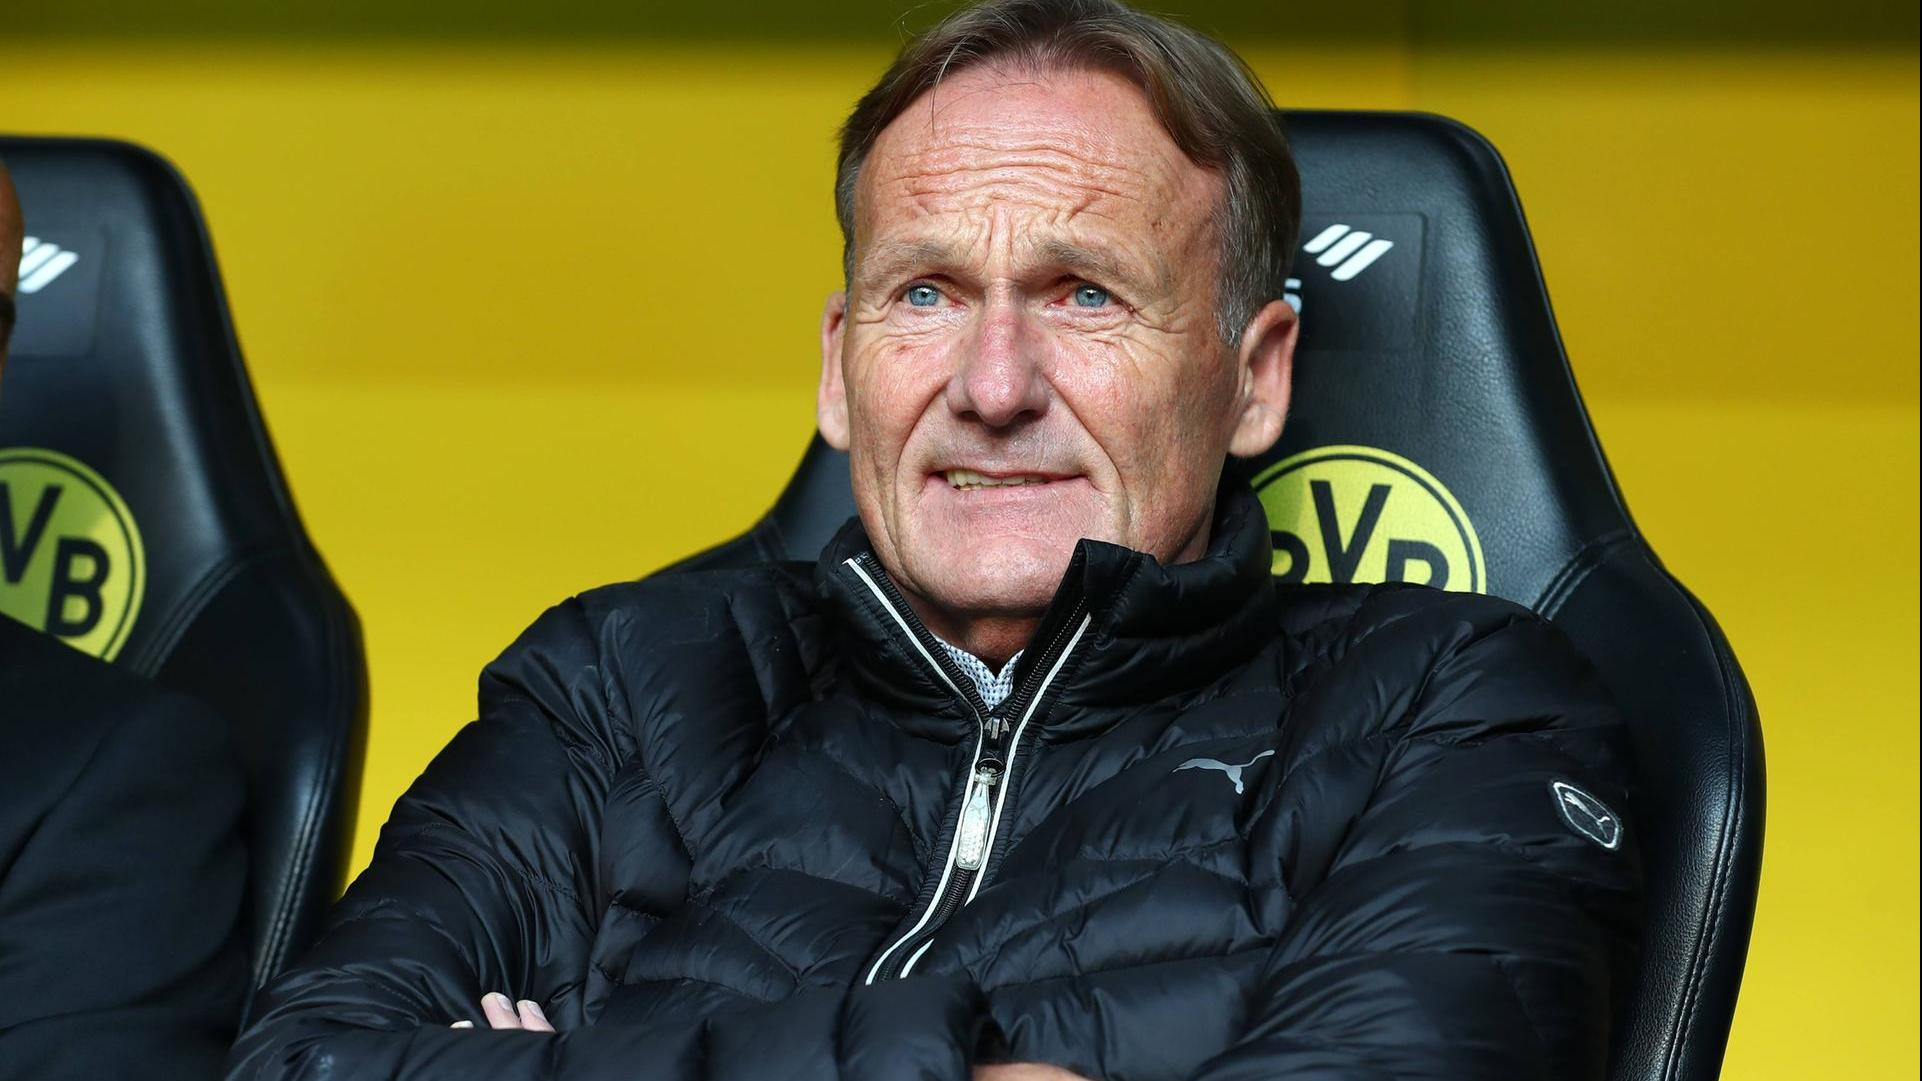 bvb boss watzke schl gt alarm haben ein riesenproblem. Black Bedroom Furniture Sets. Home Design Ideas